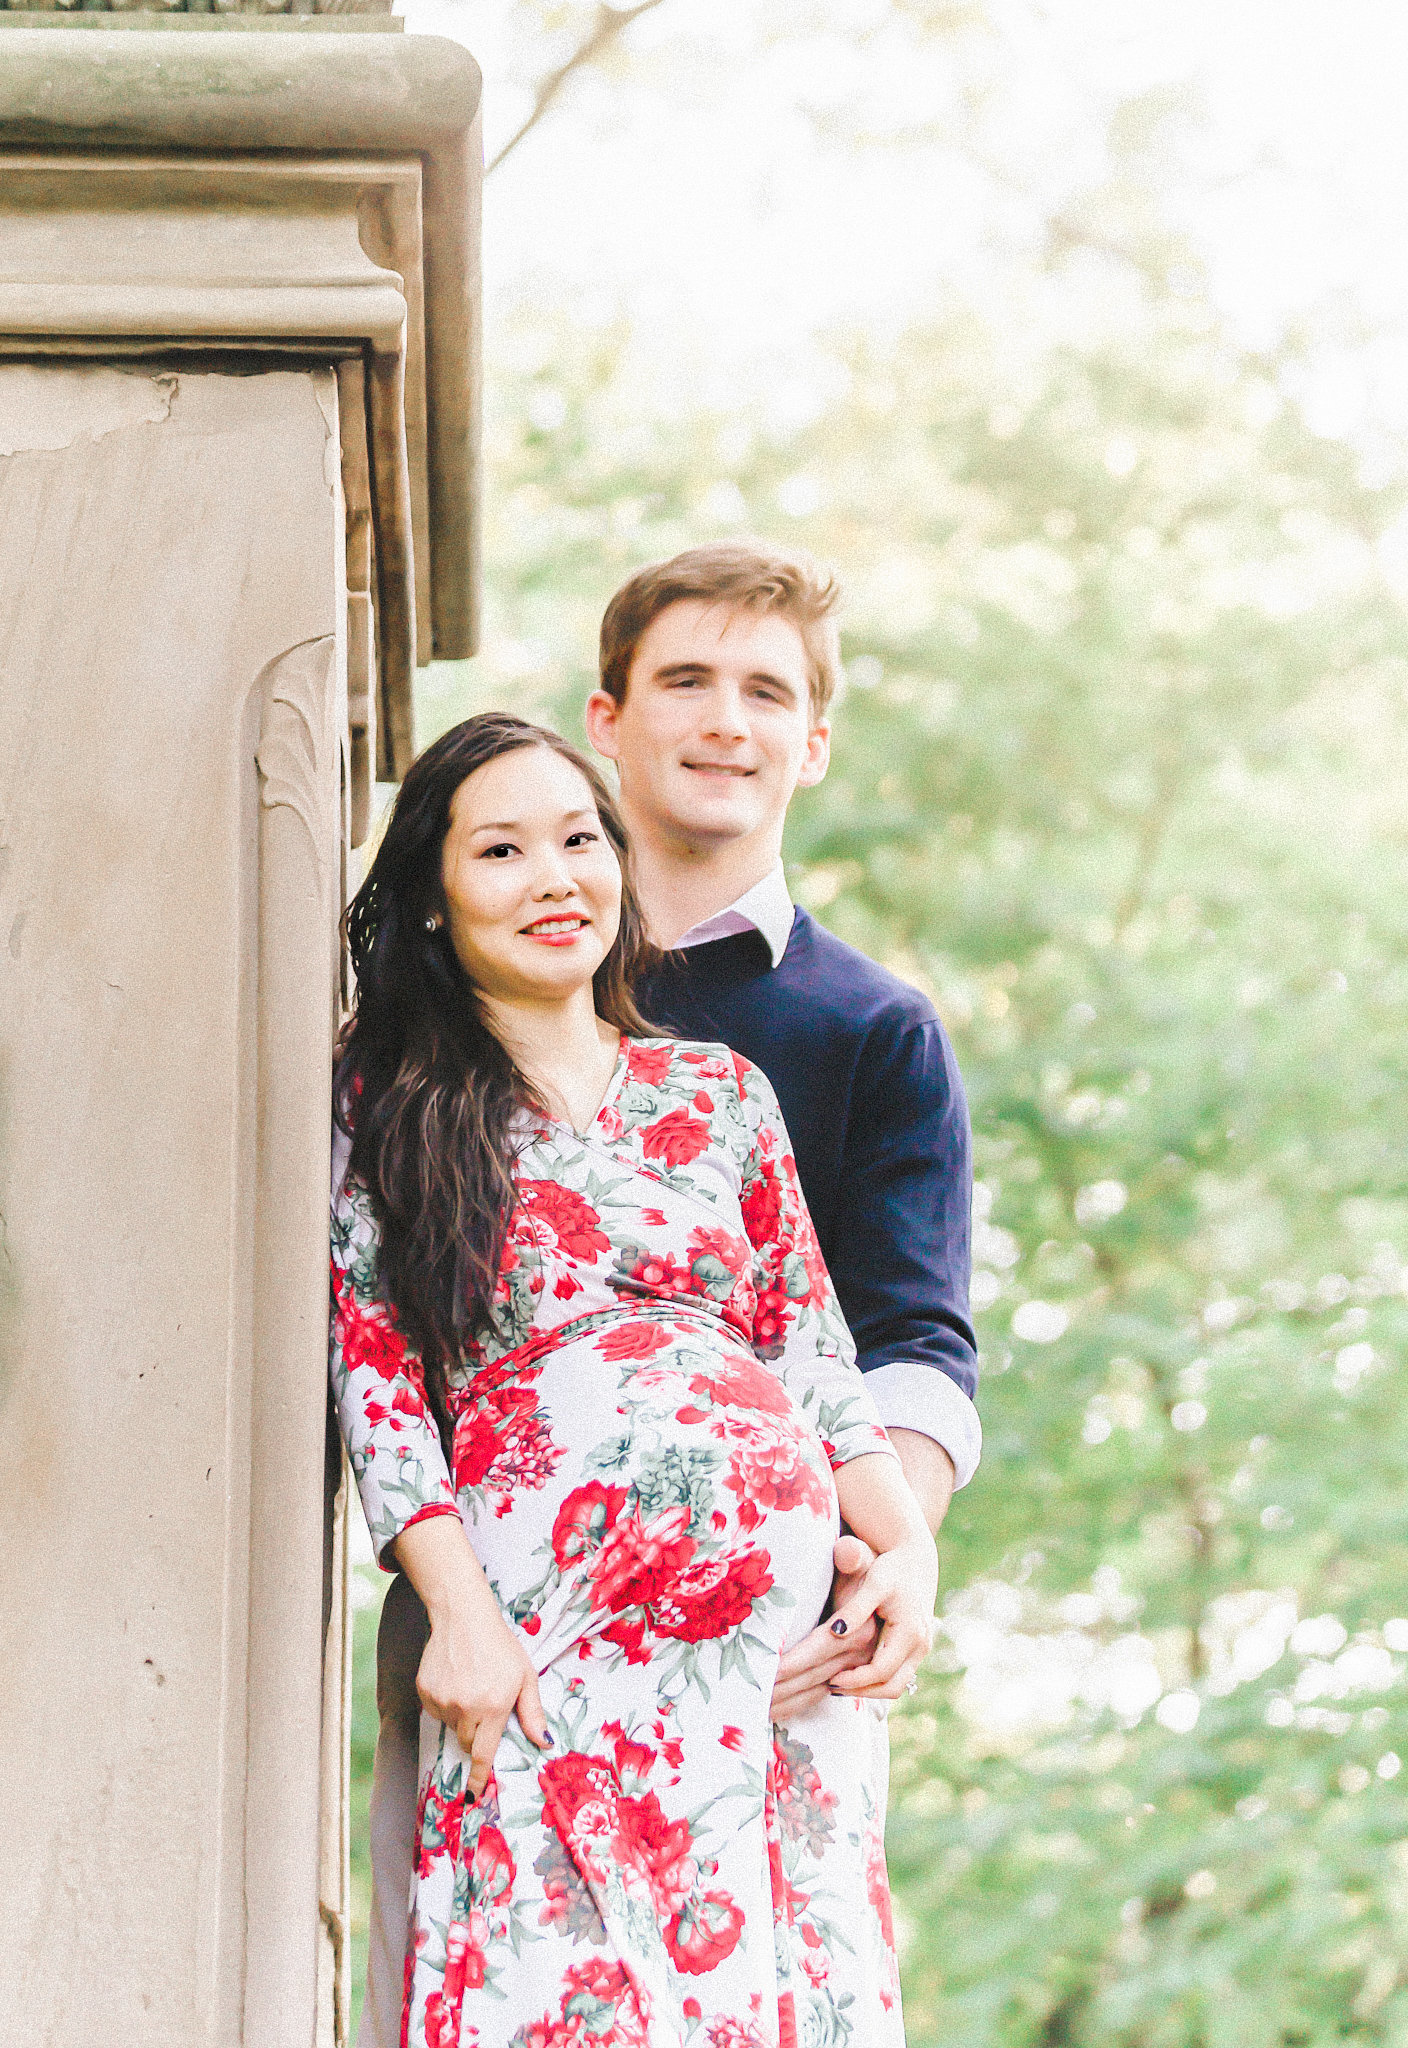 Dreamcatcher Rose Studios - Maternity - central park nyc - maternity couple